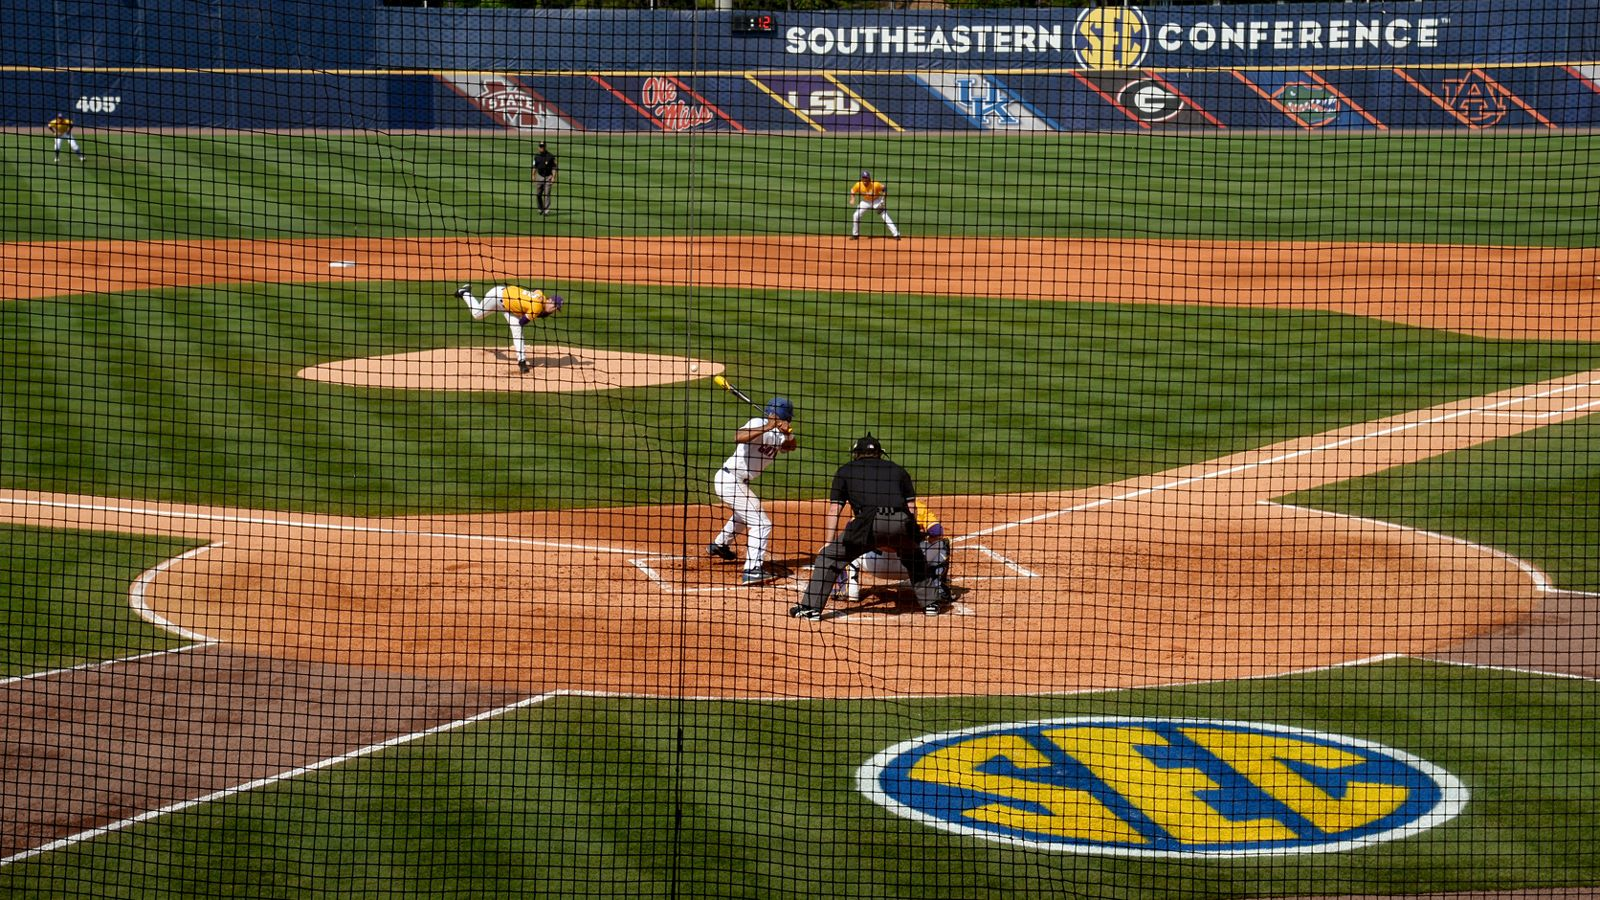 SEC Now on-site for 2016 SEC Baseball Tournament